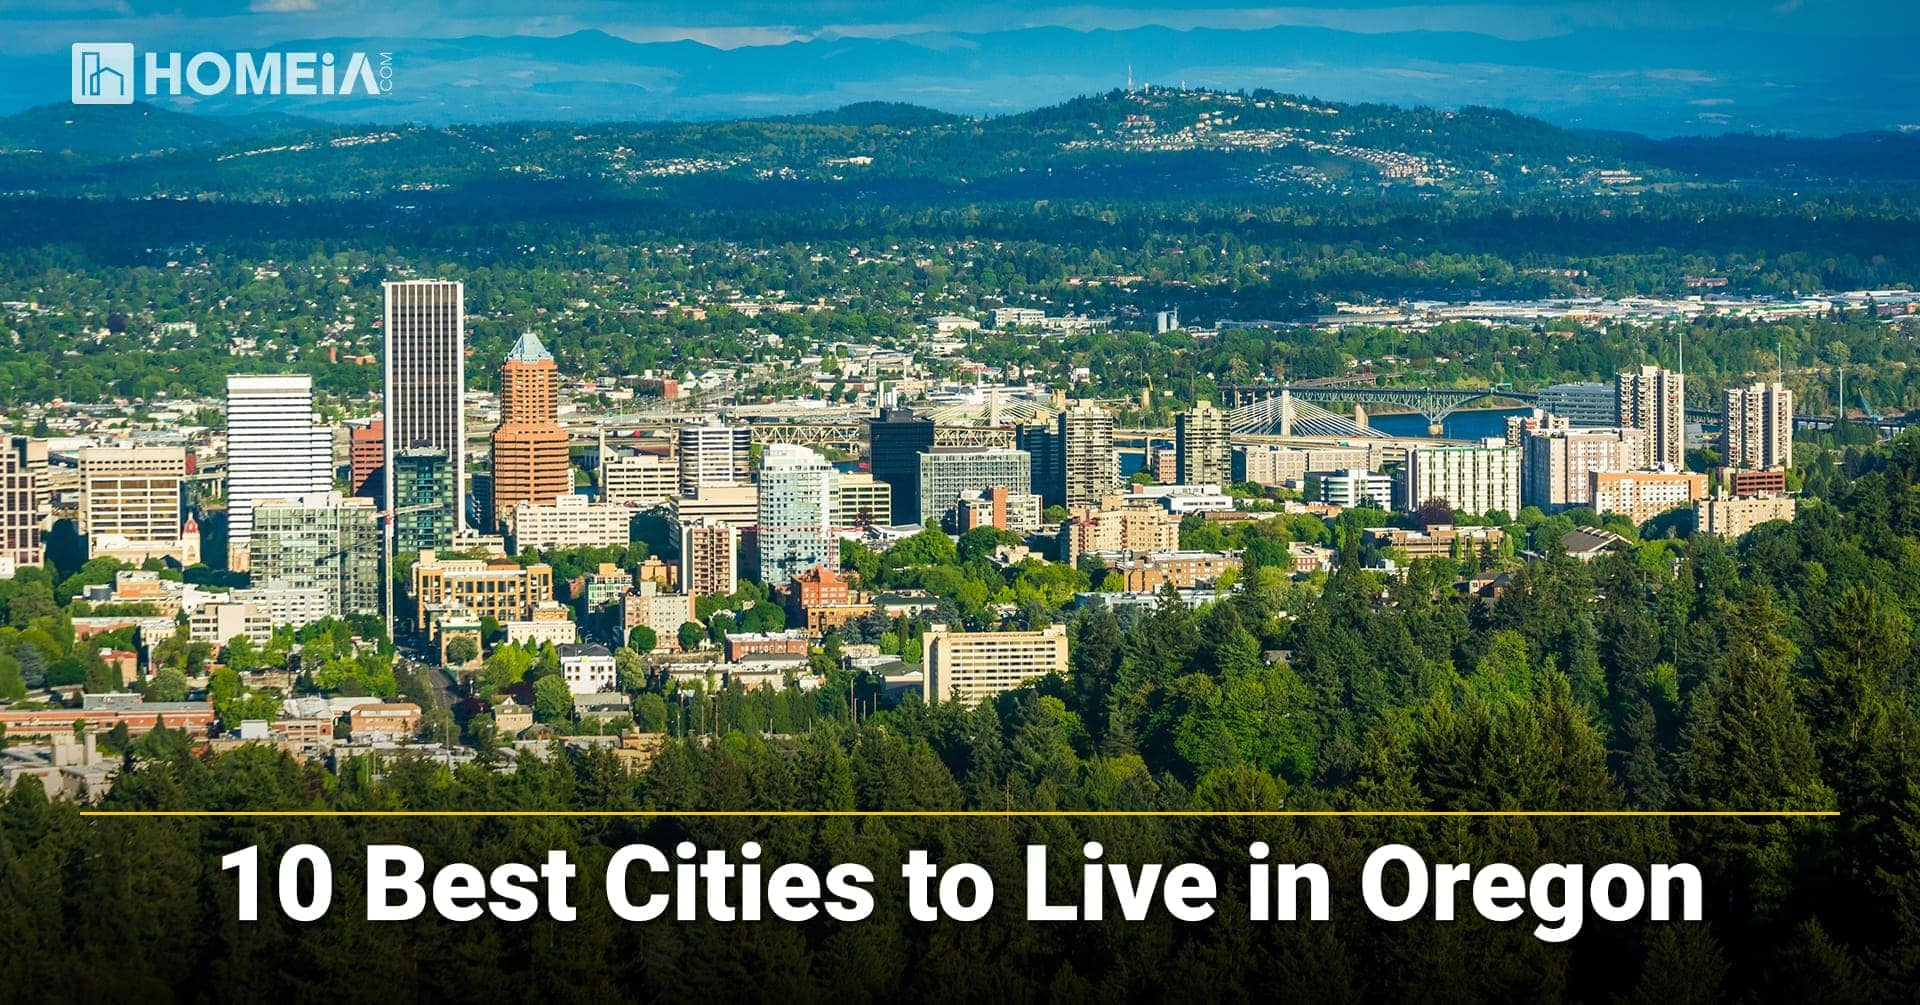 10 Best Places You Should Consider Before Moving to Oregon